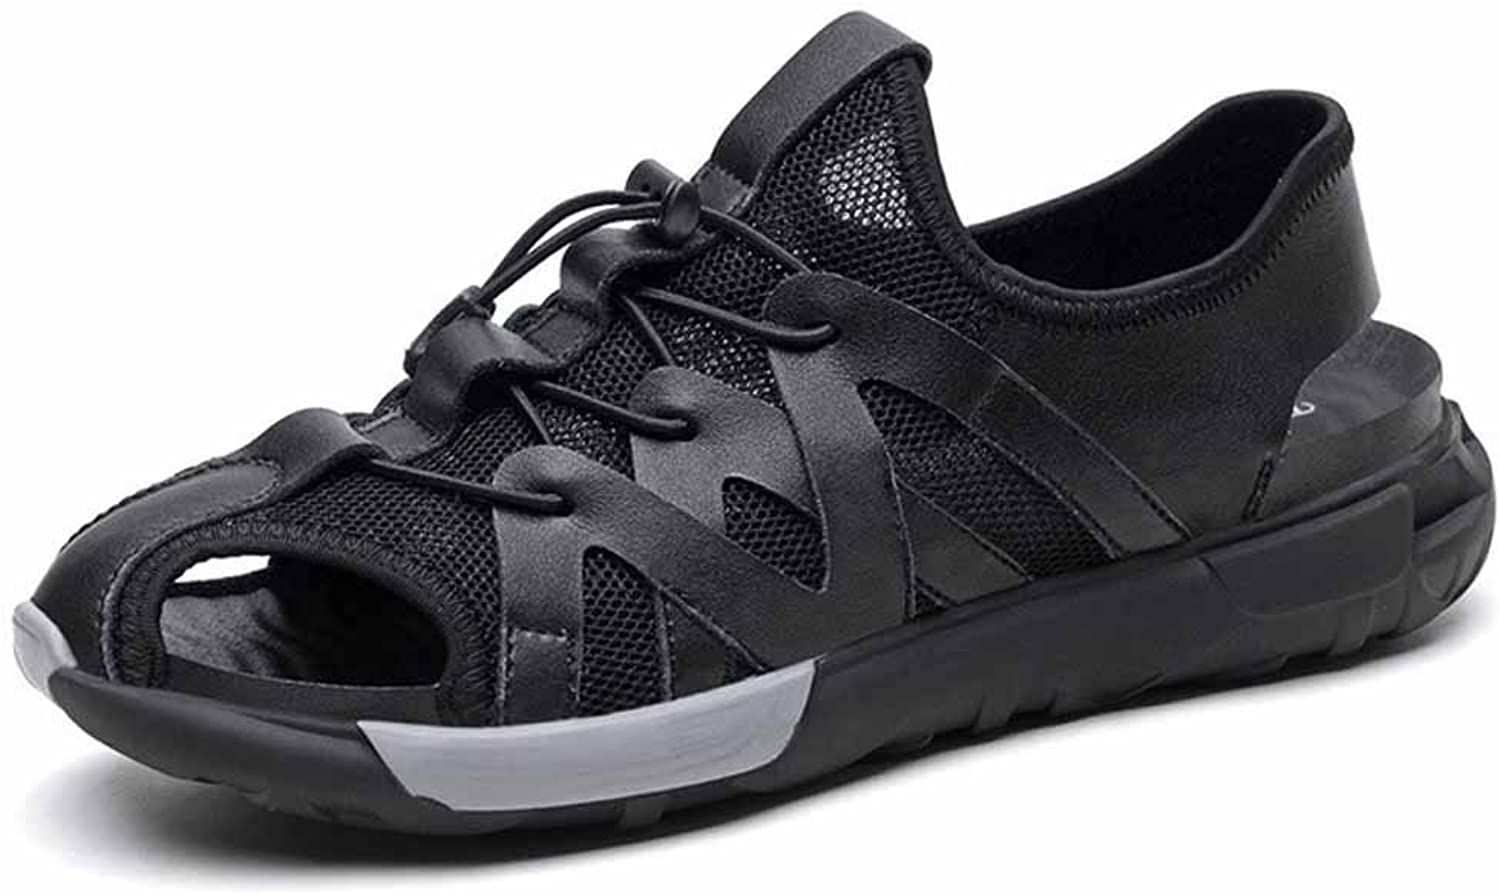 GLSHI Men Mesh Breathable Sandals Summer Hollow Beach shoes Low Top Closed Toe Sports Sandals Black